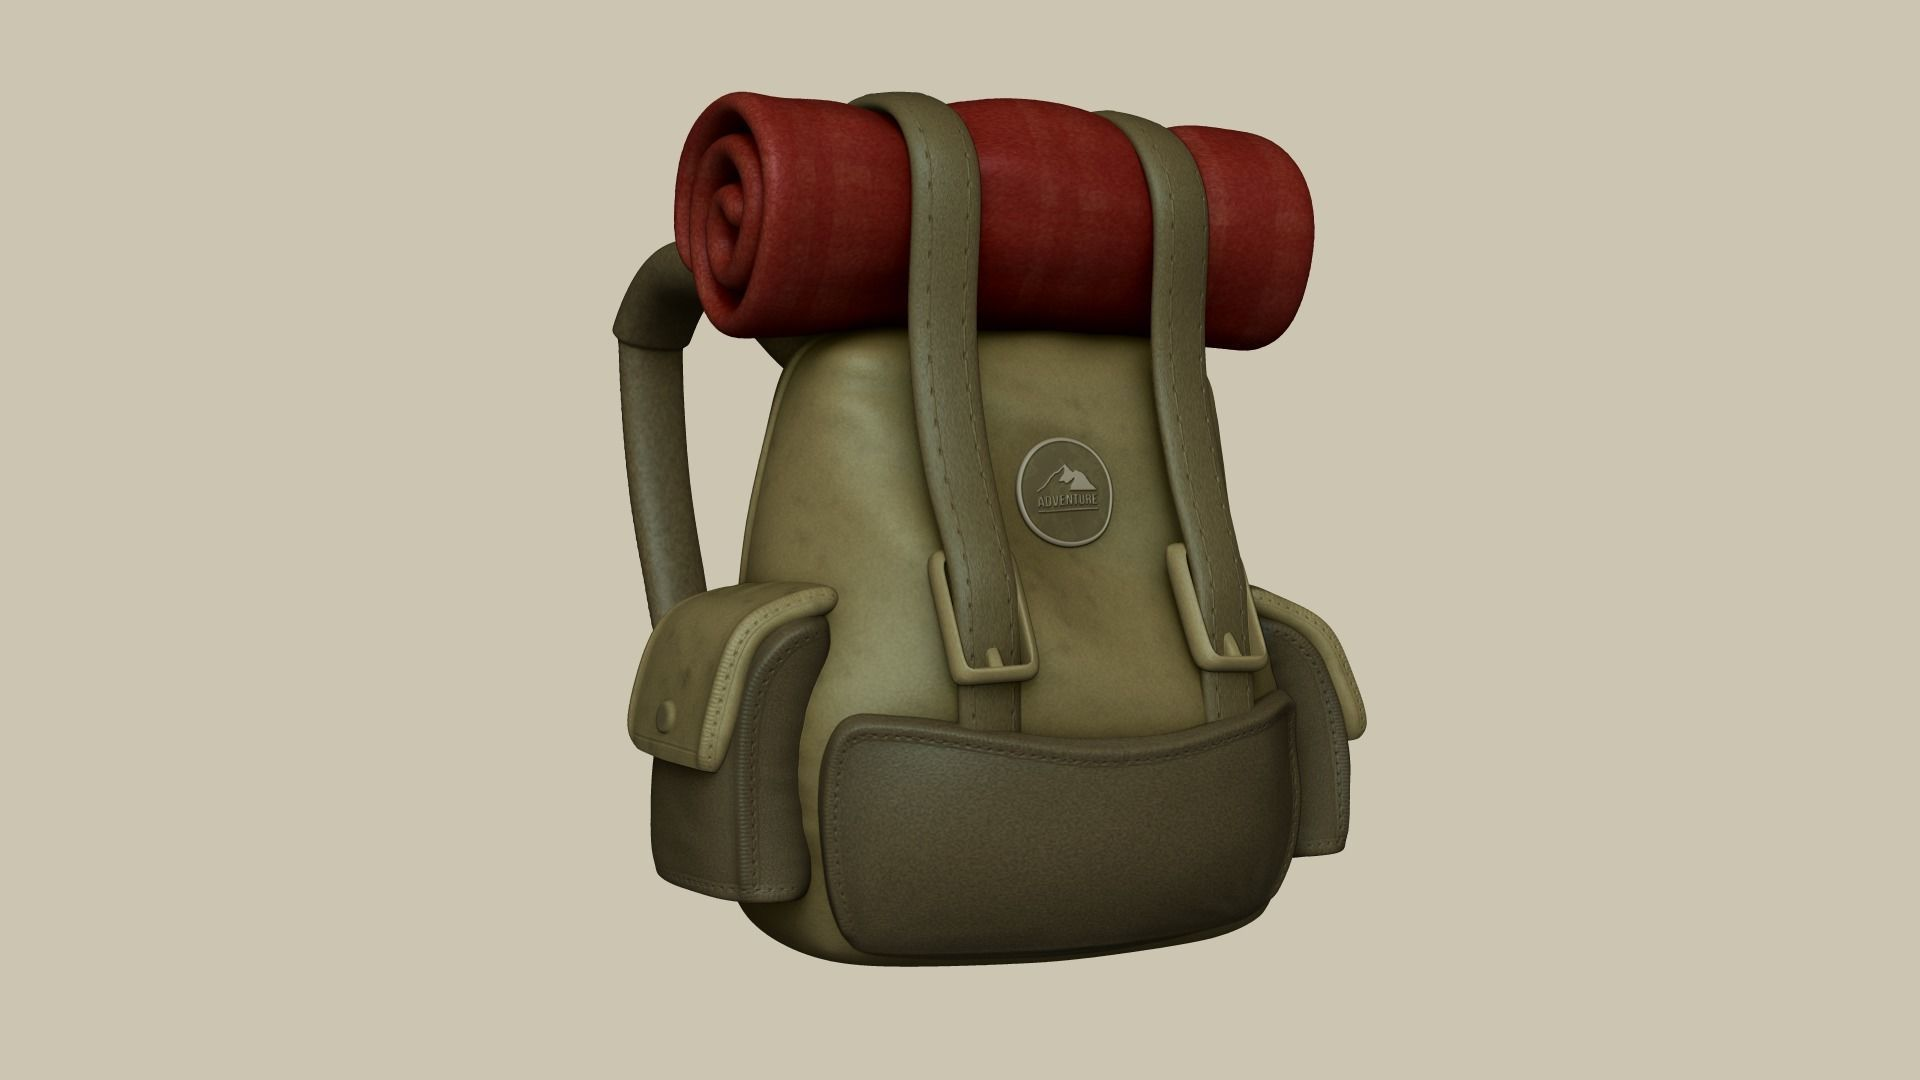 Camping Adventurer Backpack - Character Costume